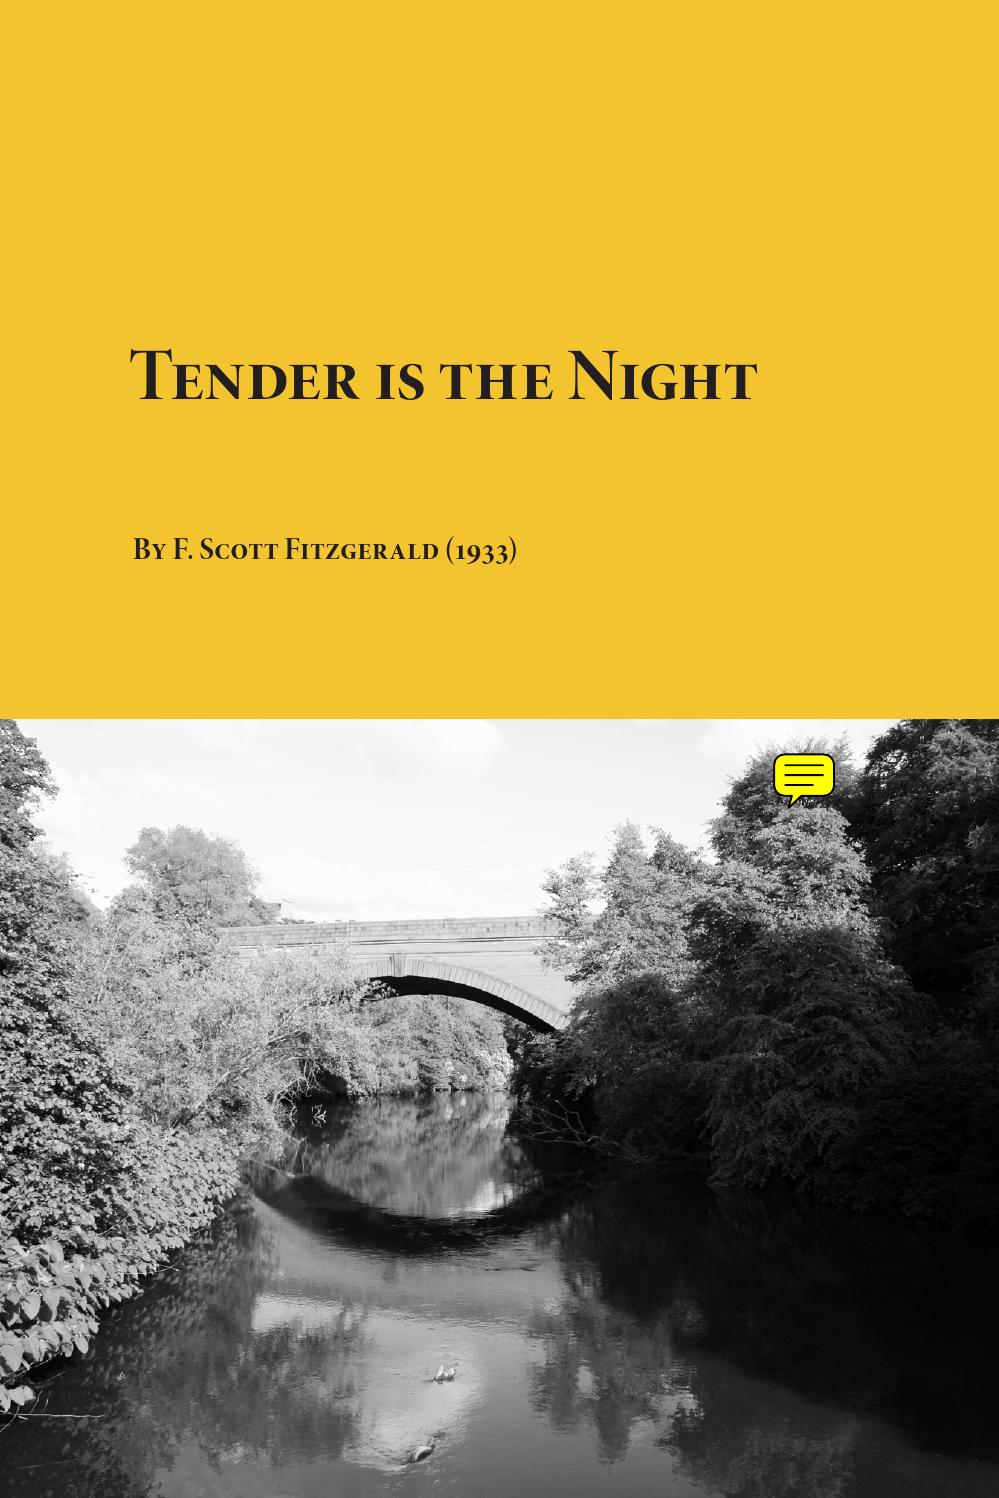 tender is the night book response essay